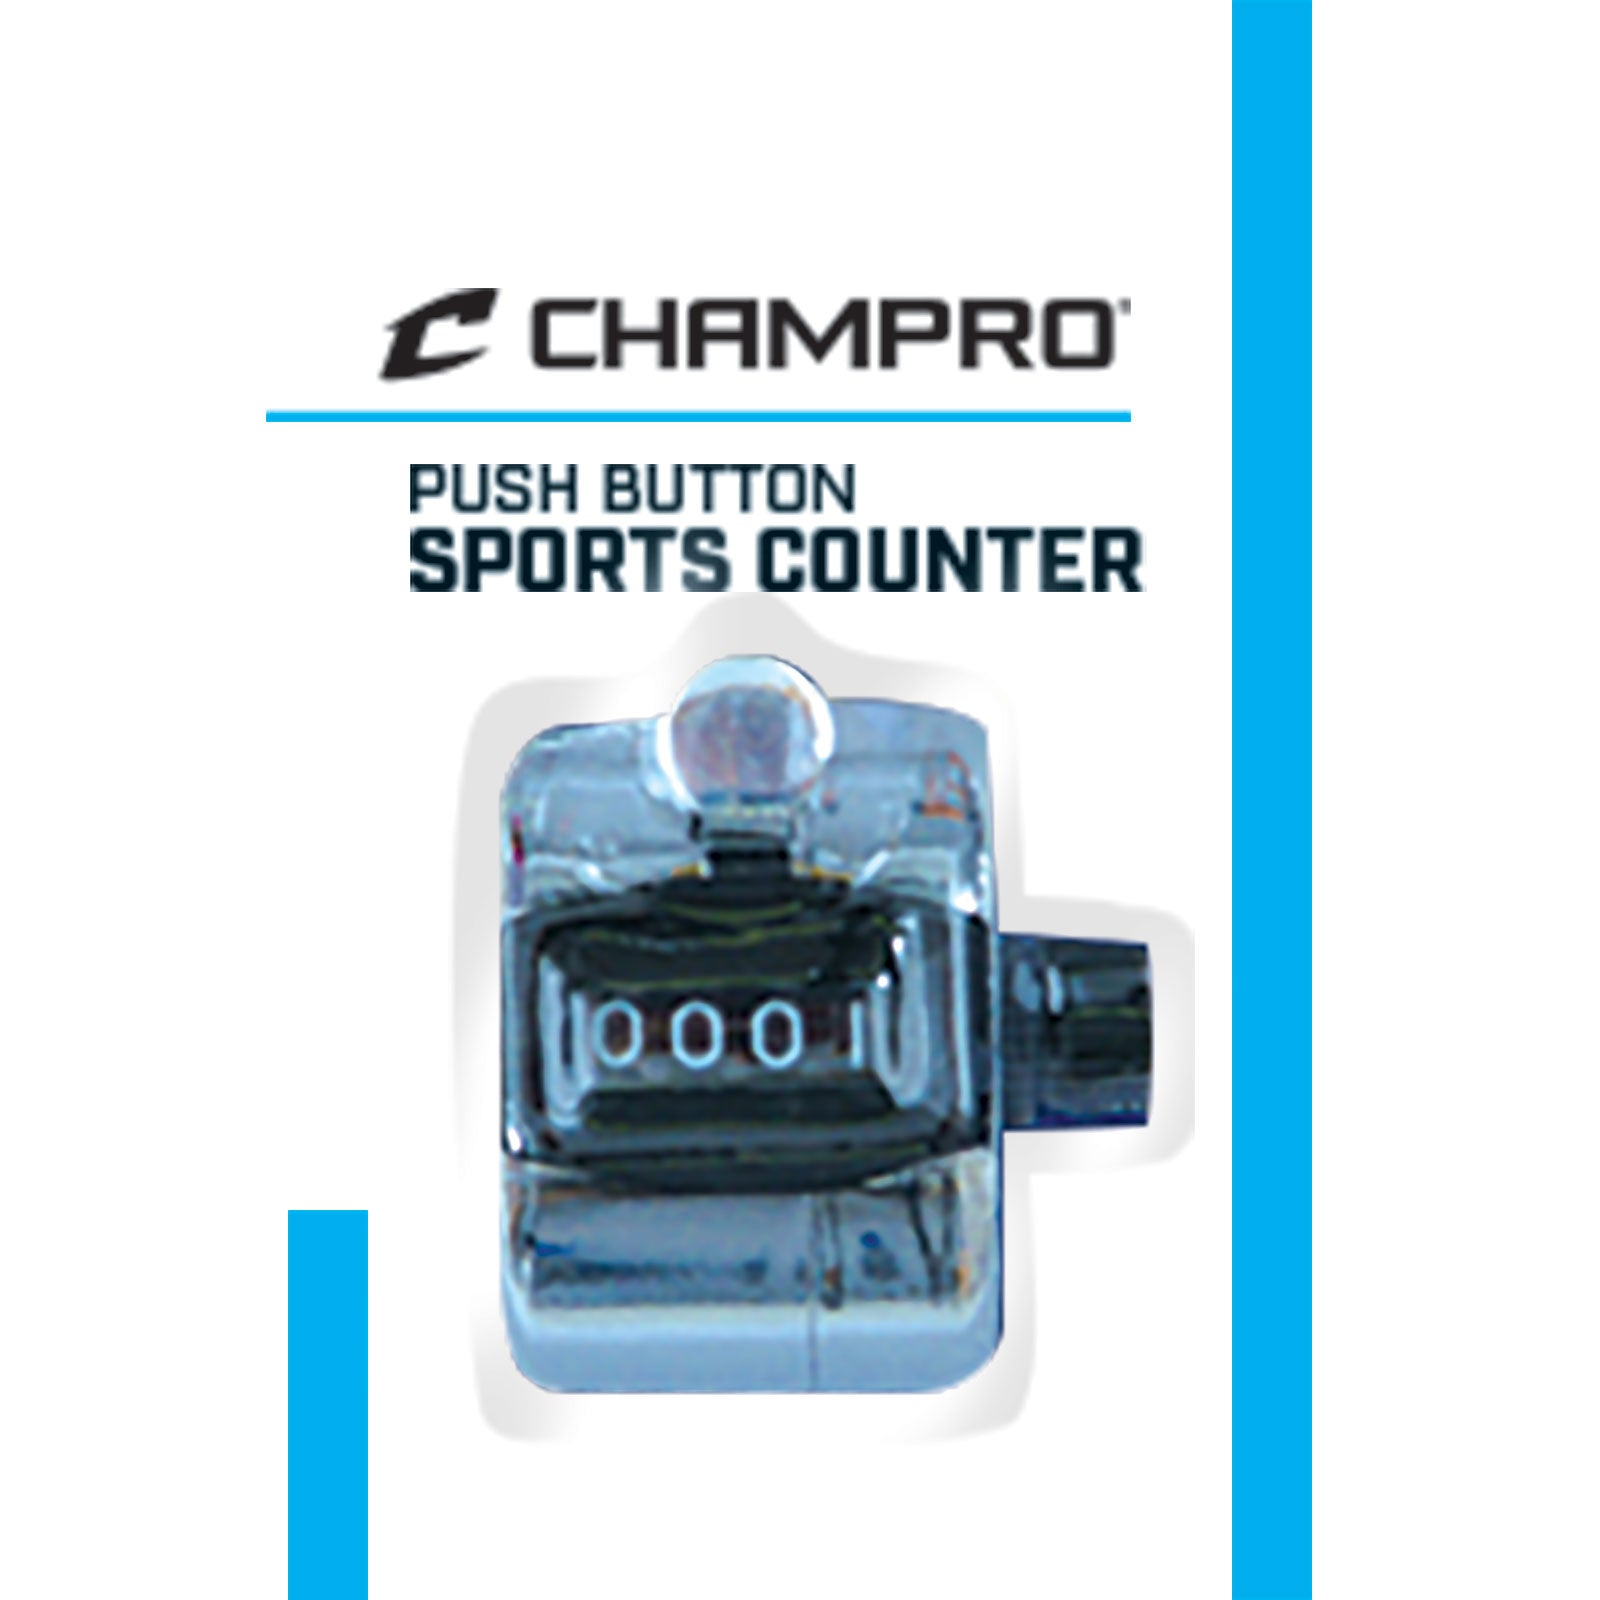 CHAMPRO PUSH BUTTON SPORTS COUNTER A021